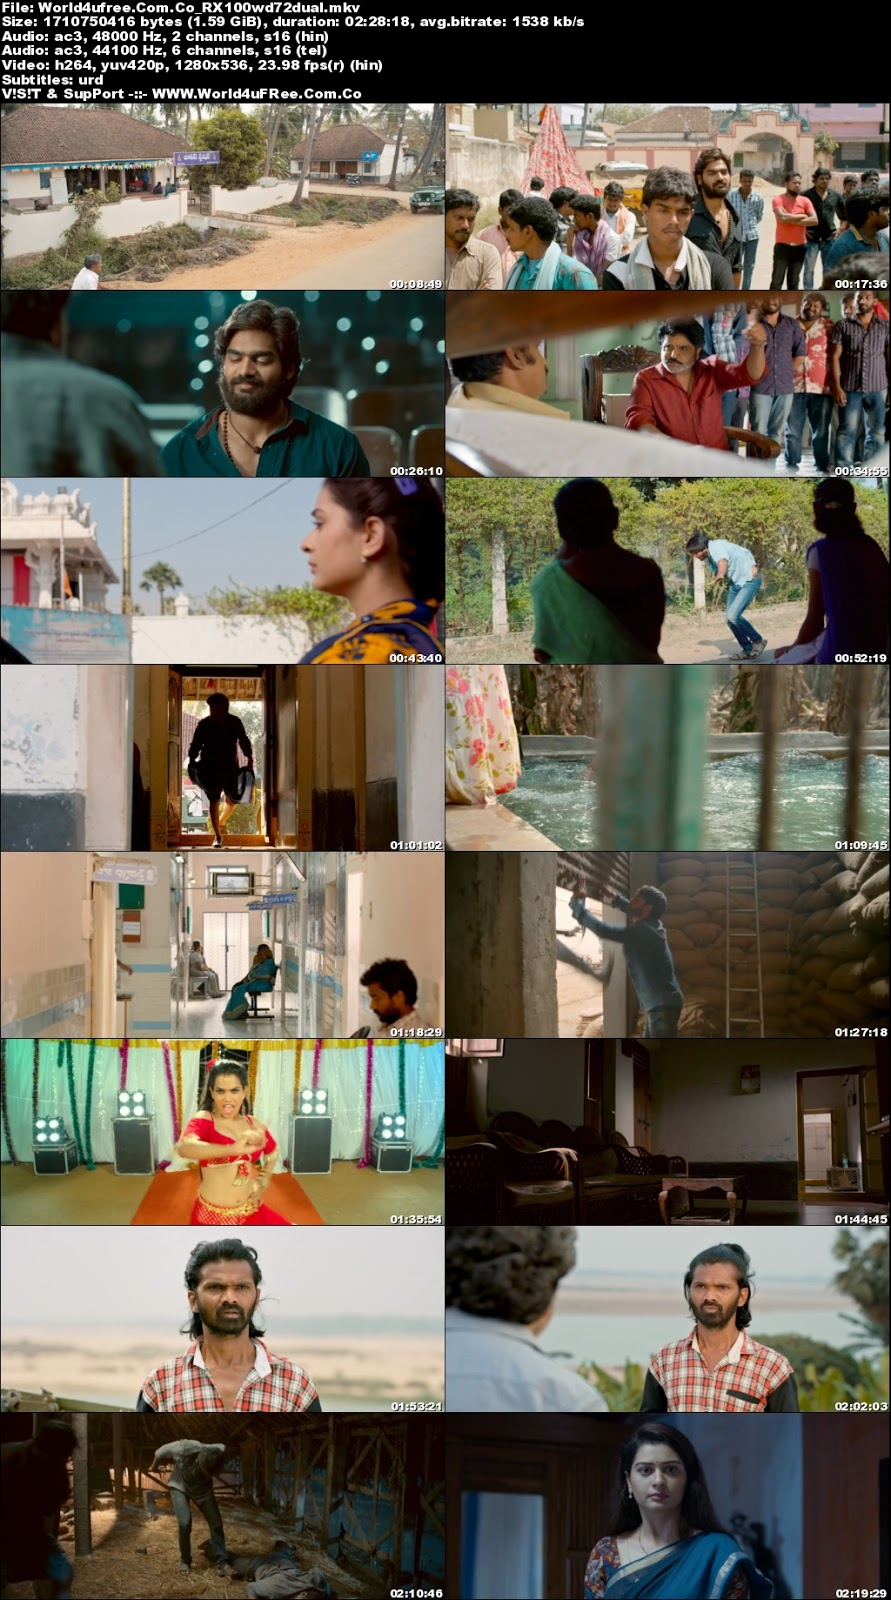 rx100 full movie in hindi download 720p